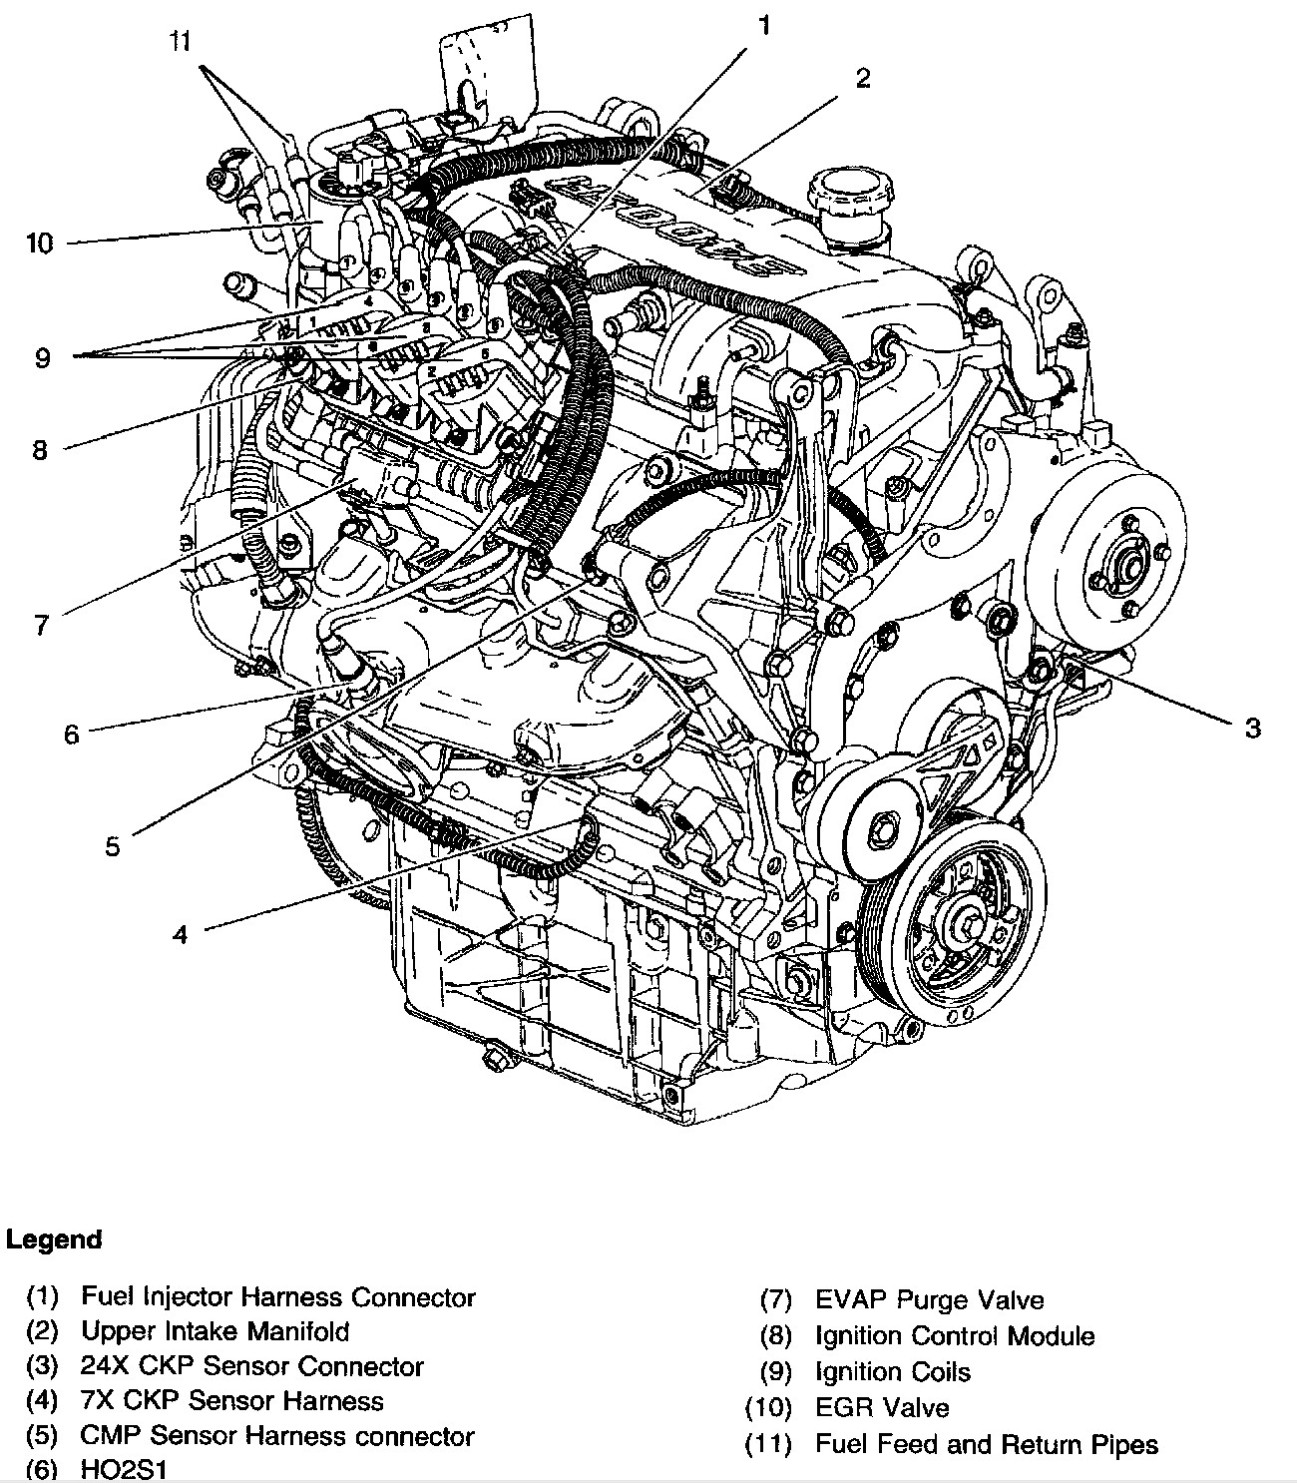 2003 Chevy Impala Engine Diagram Chevrolet Engine Diagrams Wiring Diagram Options Of 2003 Chevy Impala Engine Diagram